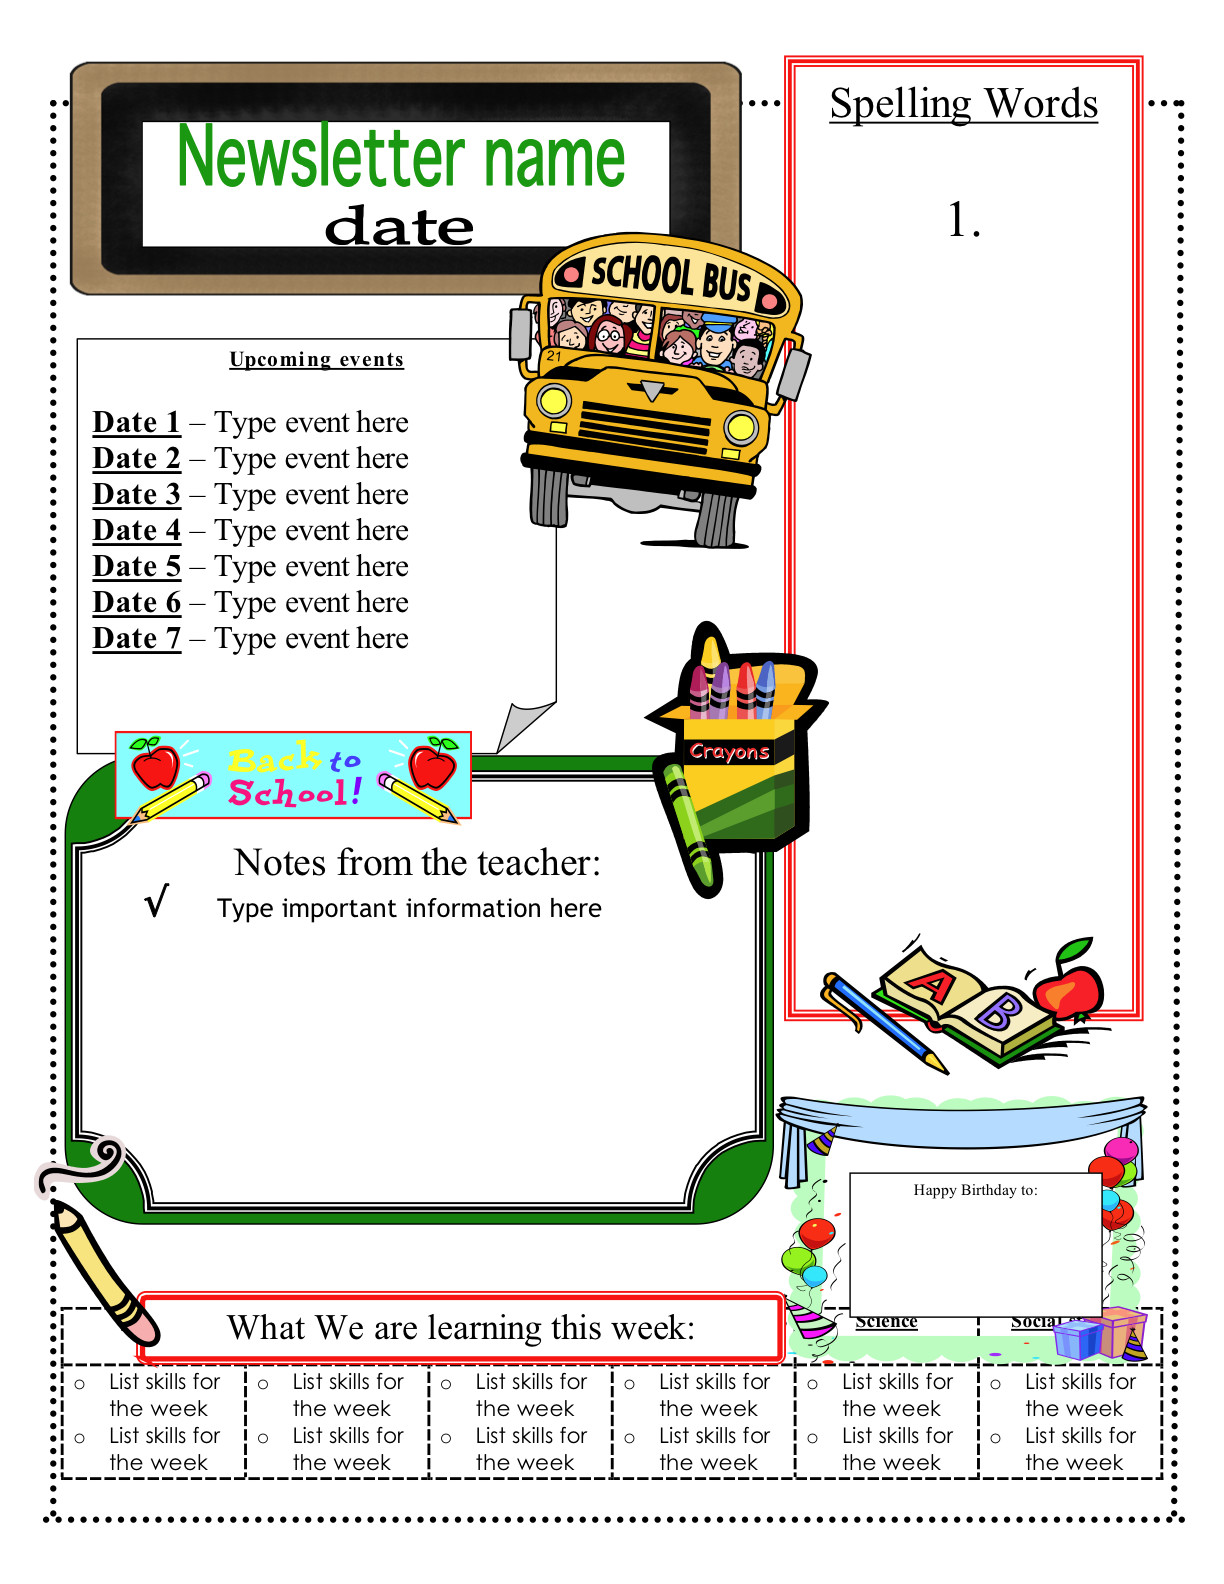 Free School Newsletter Templates 3 6 Free Resources June 2012